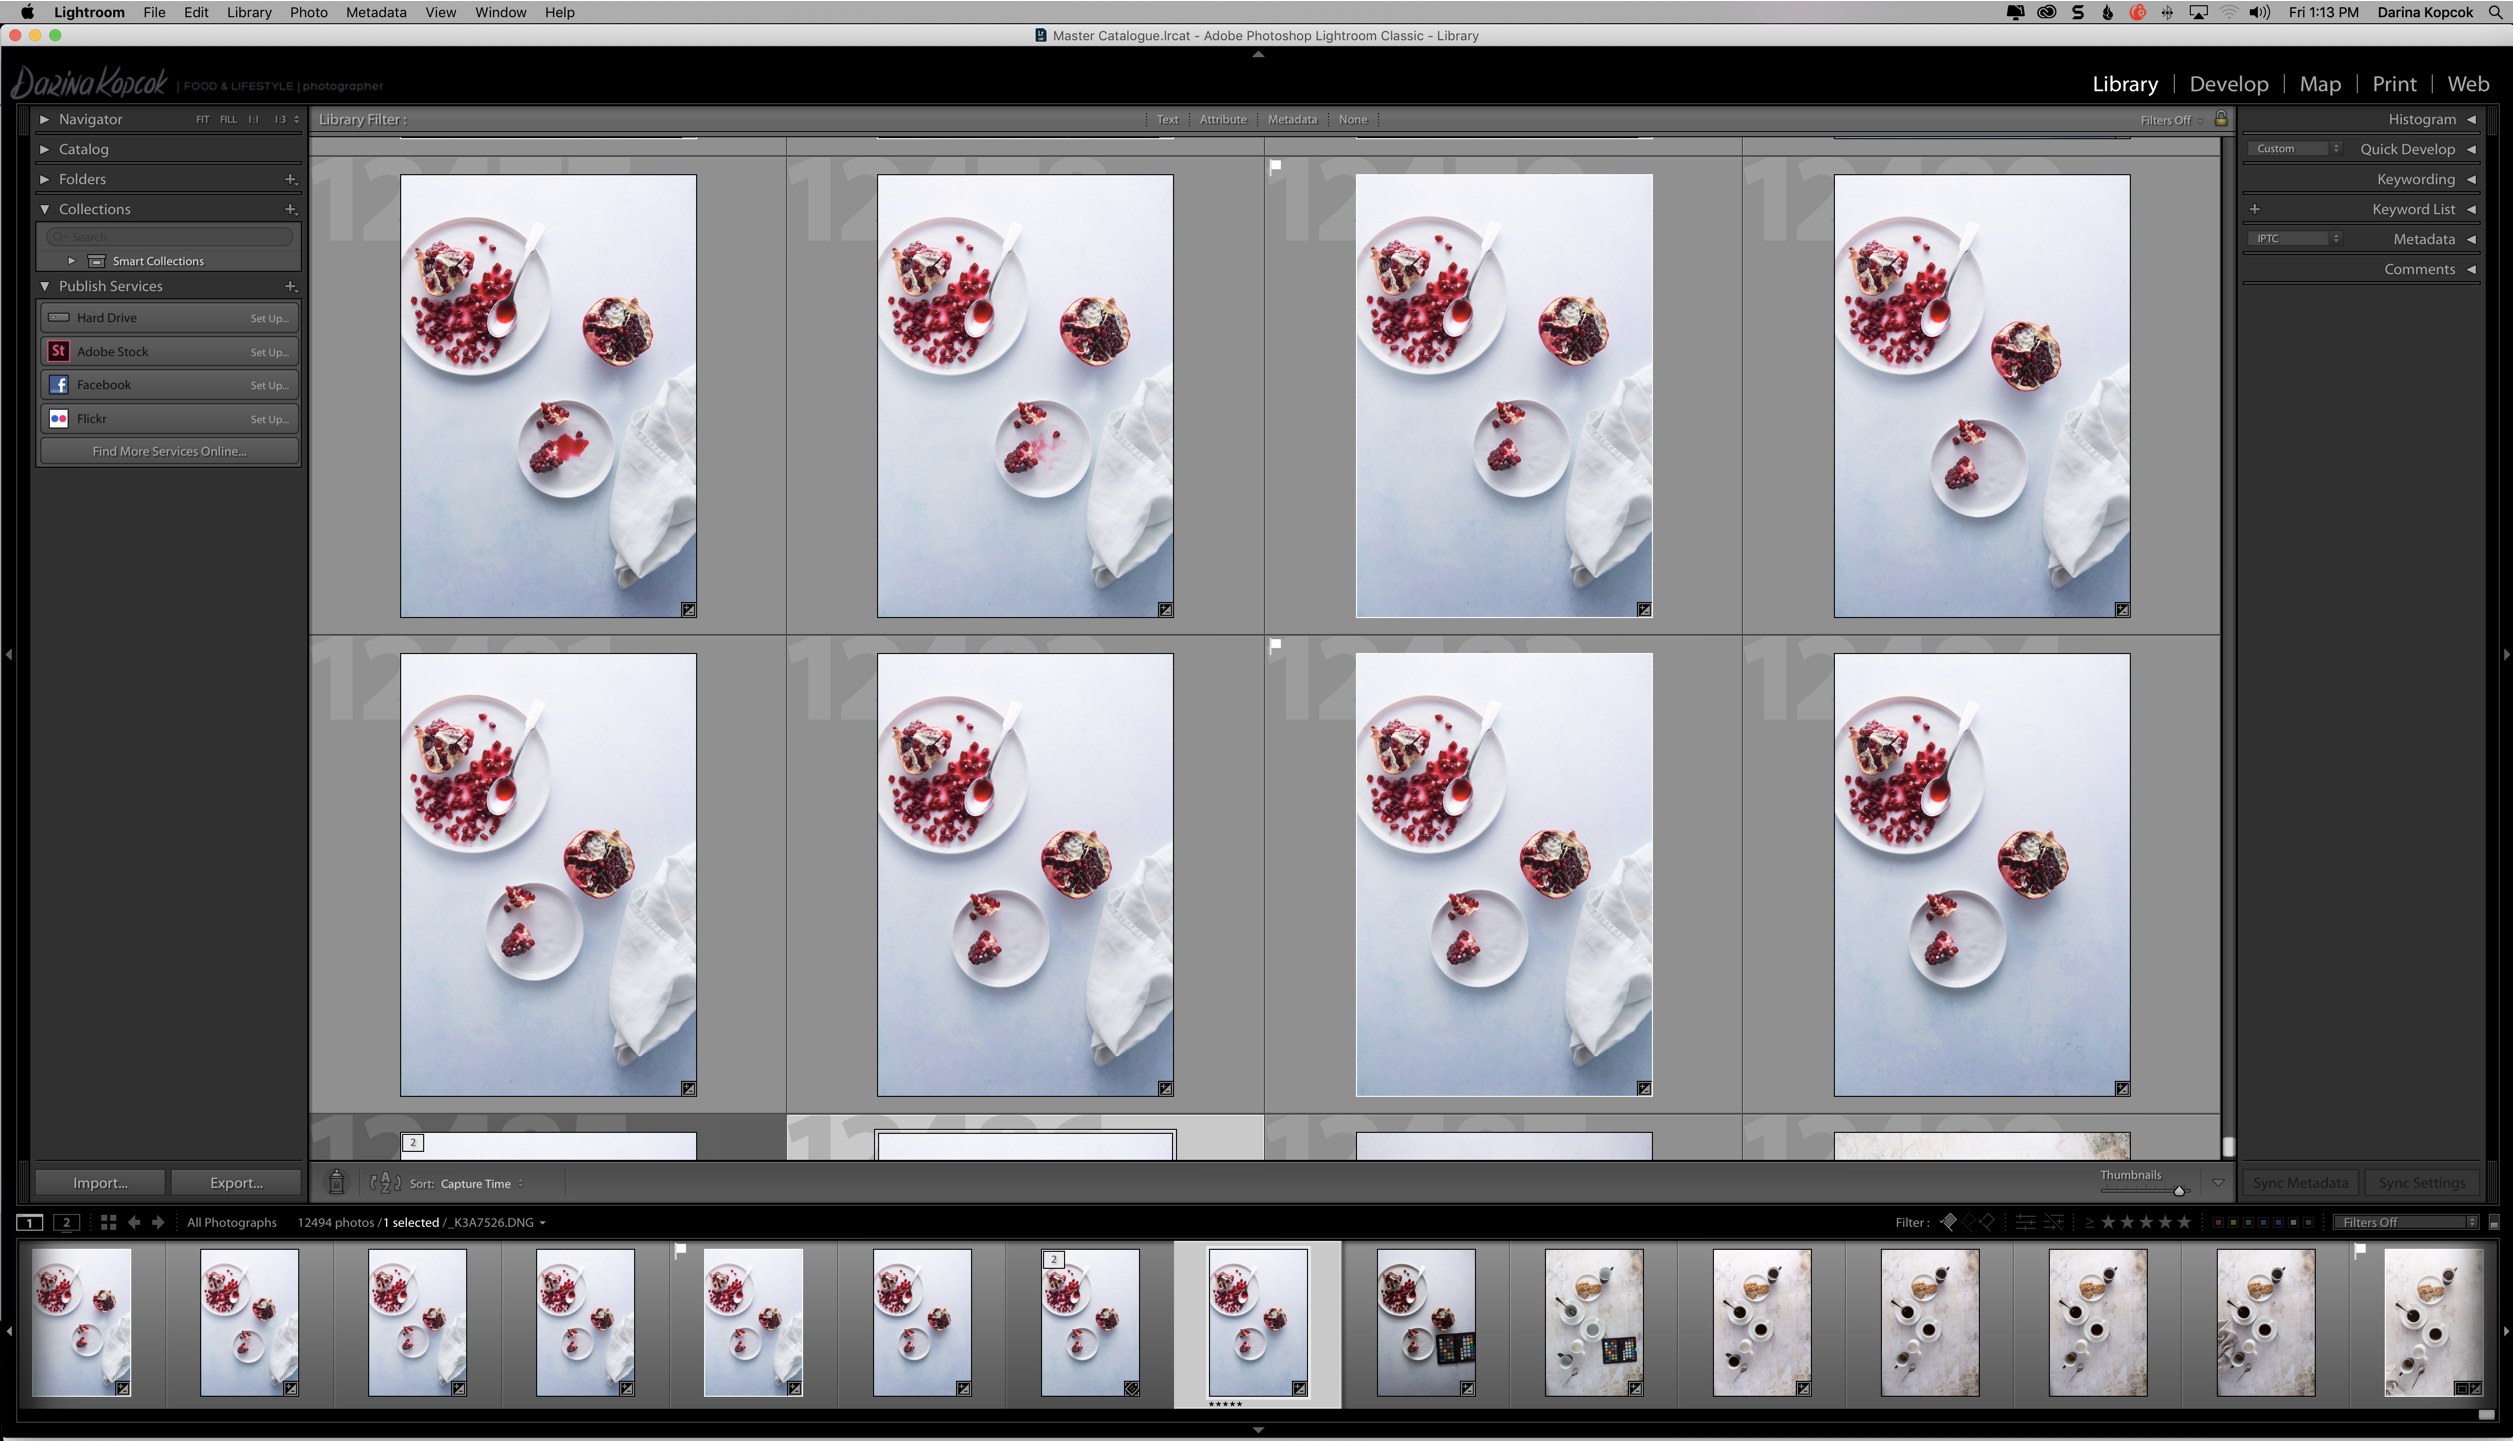 Lightroom Workspace in Grid View-Darina Kopcok-DPS